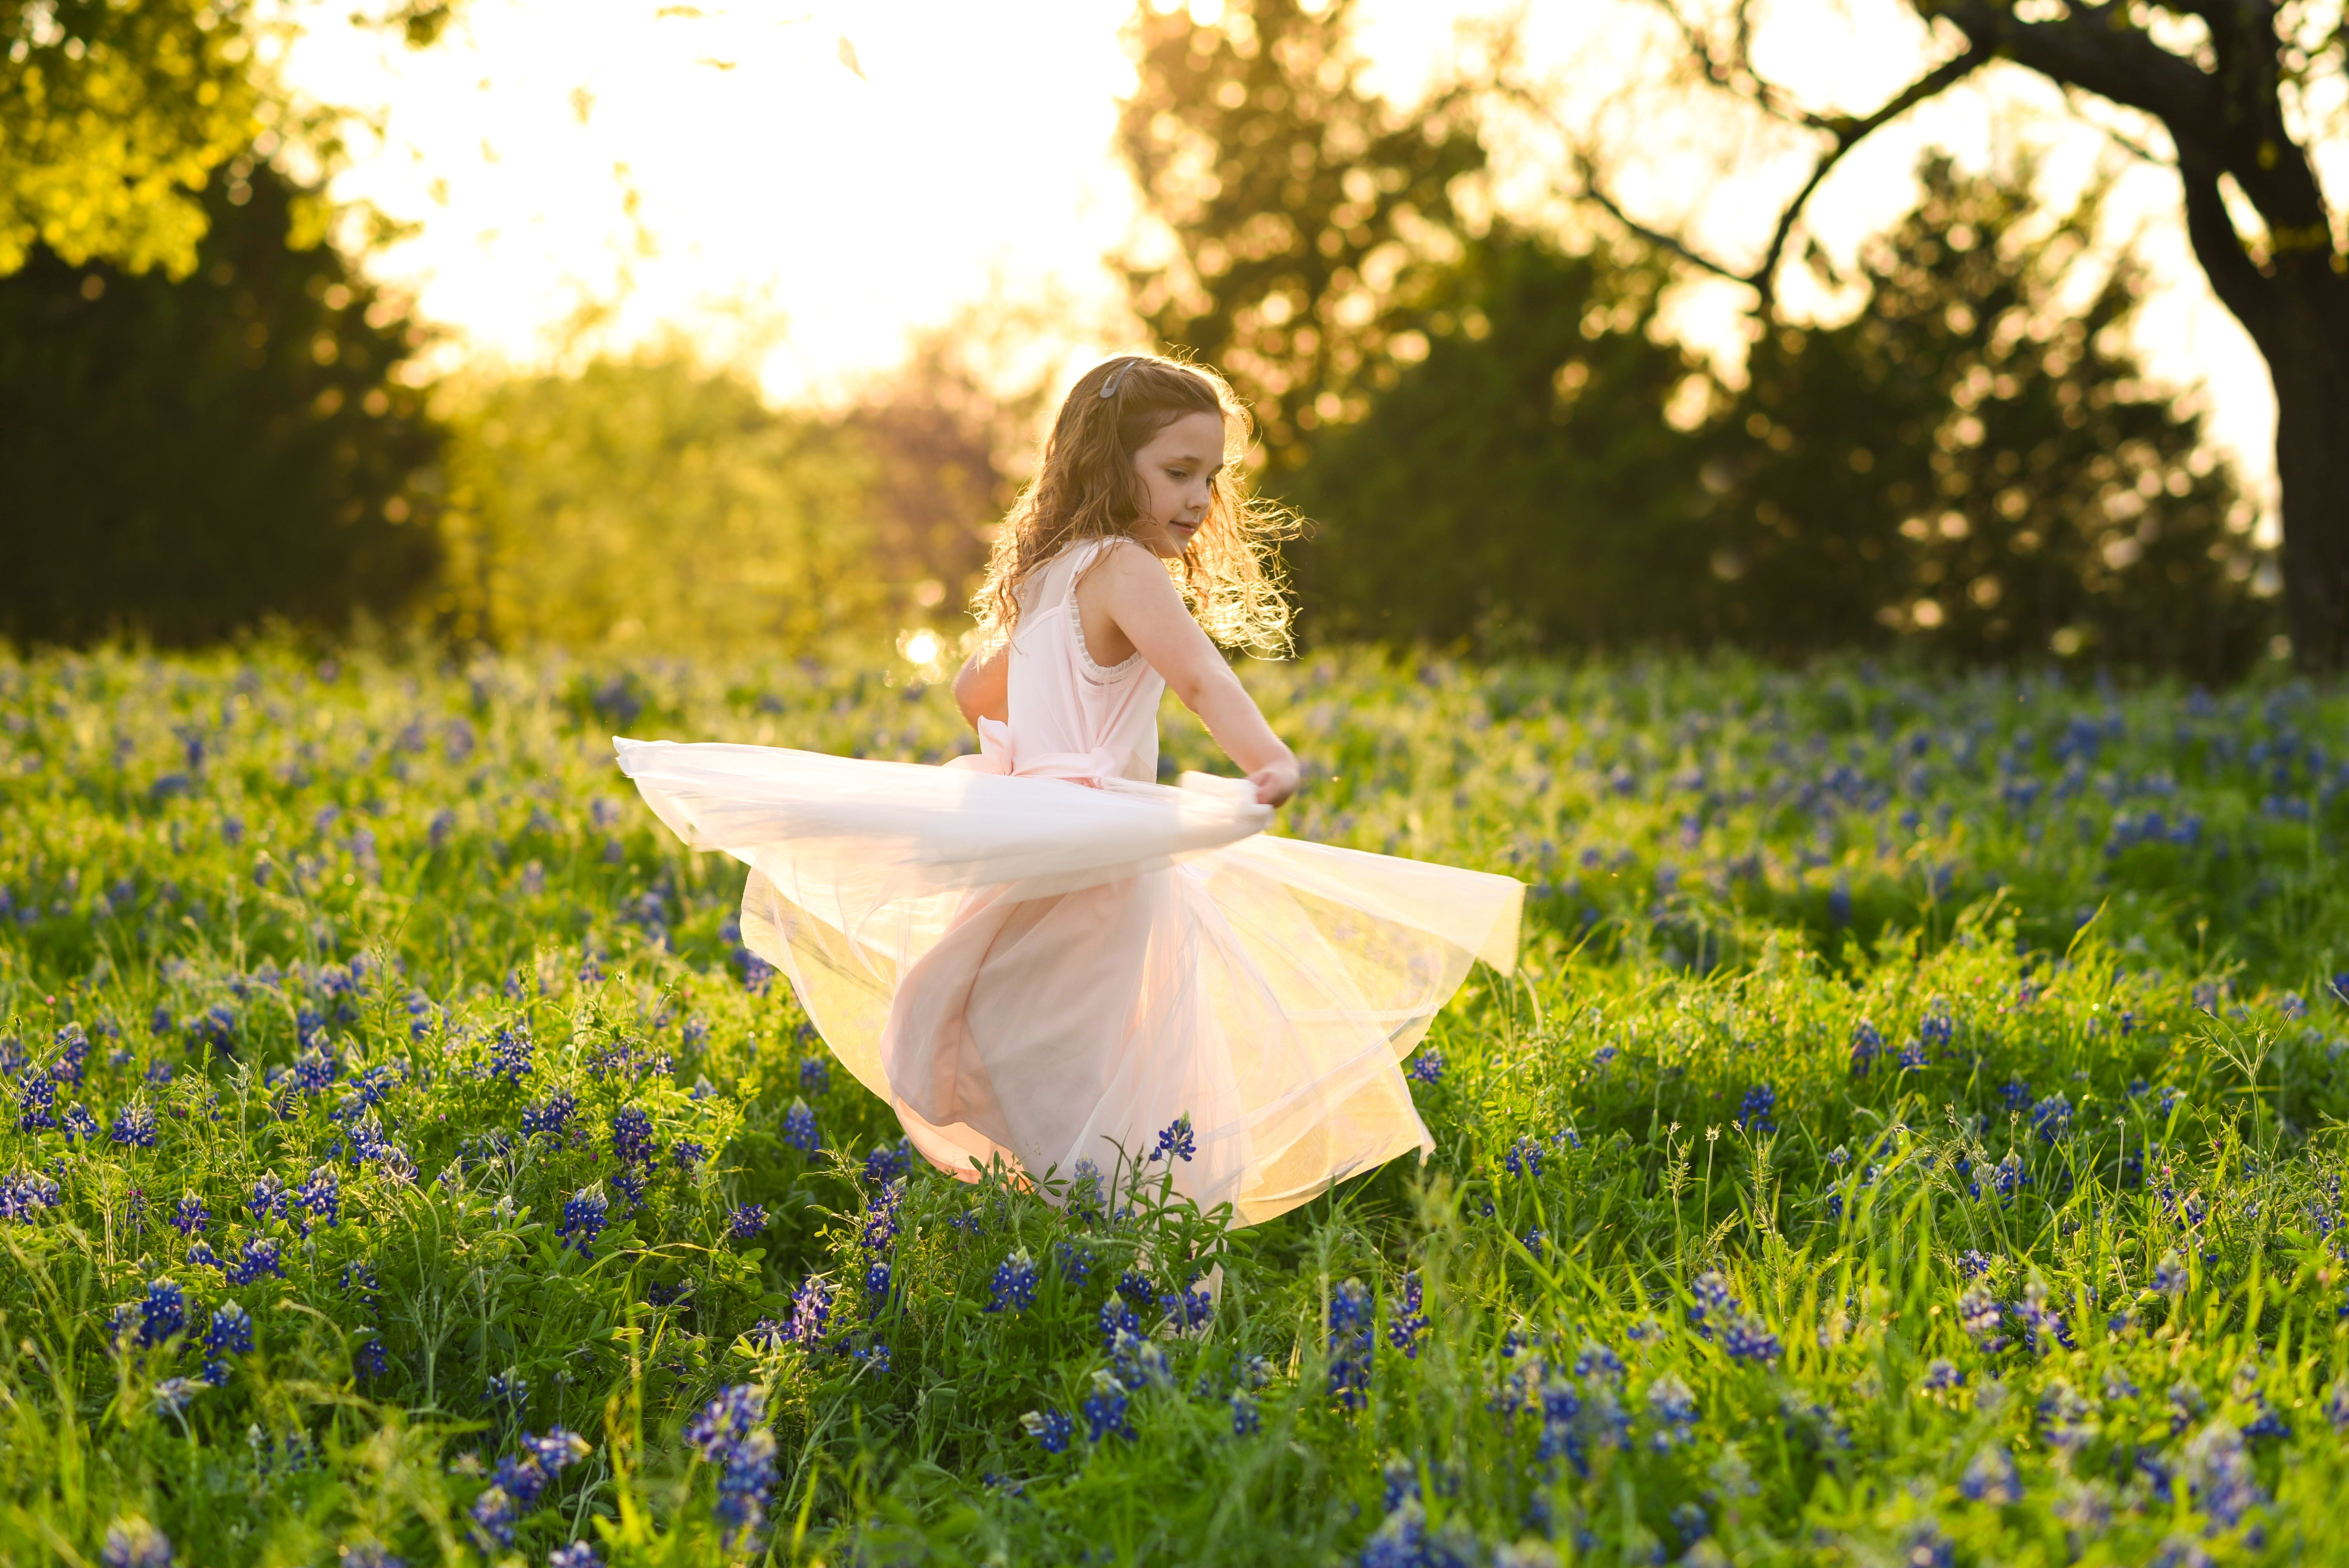 Texas Bluebonnet Session In Rockwall Texas With Alicia Wilson Photography In 2020 Lifestyle Newborn Photography Natural Light Photographer Mini Sessions